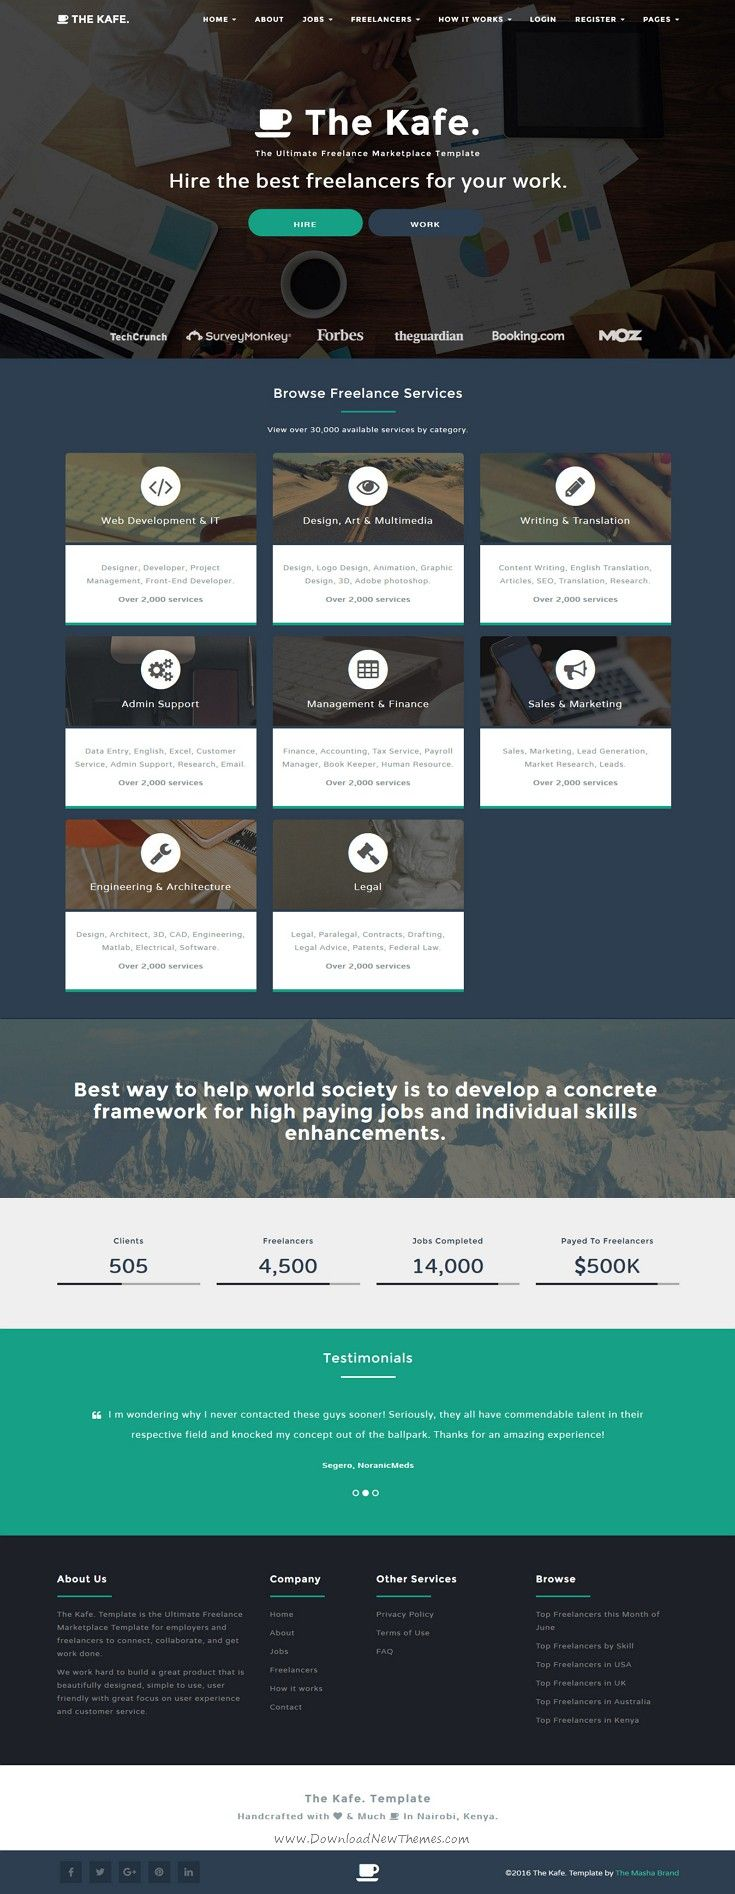 The Kafe - Ultimate Freelance Marketplace Template | Template